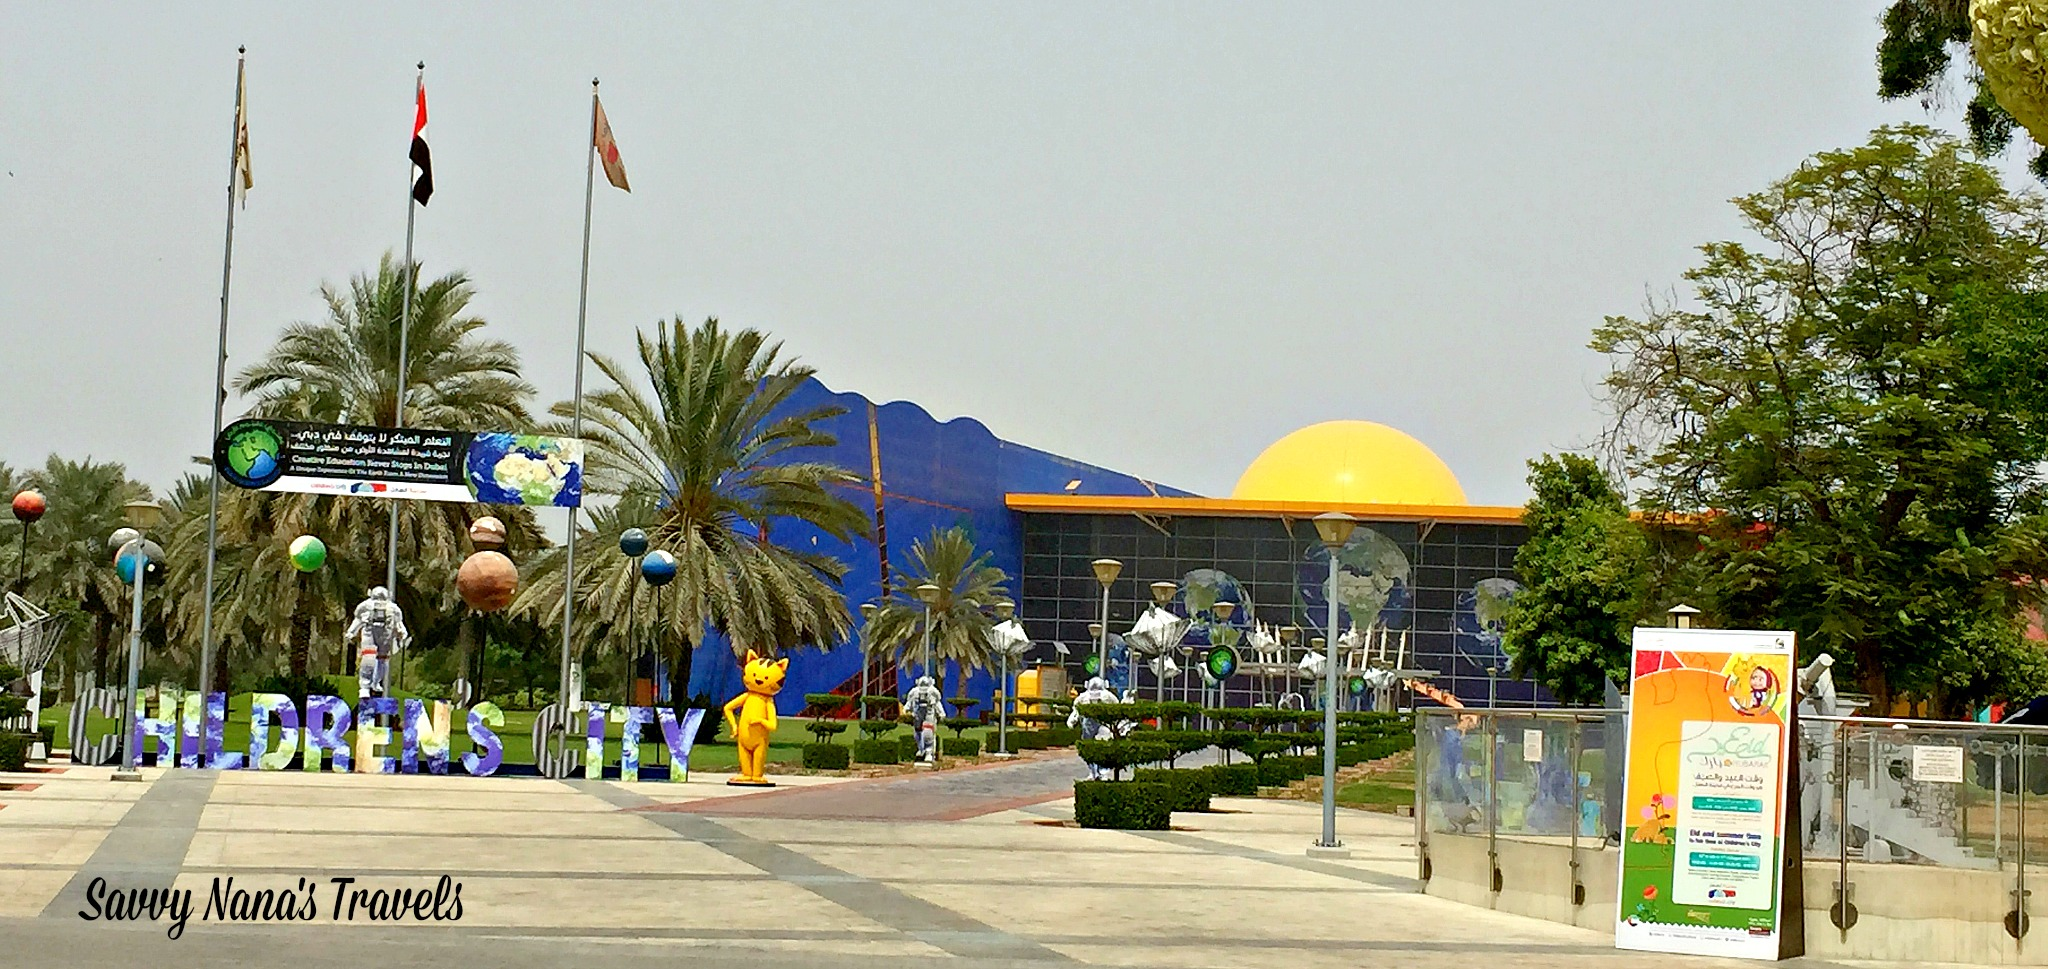 Dubai's Children City – Fun, Educational, and Inexpensive!